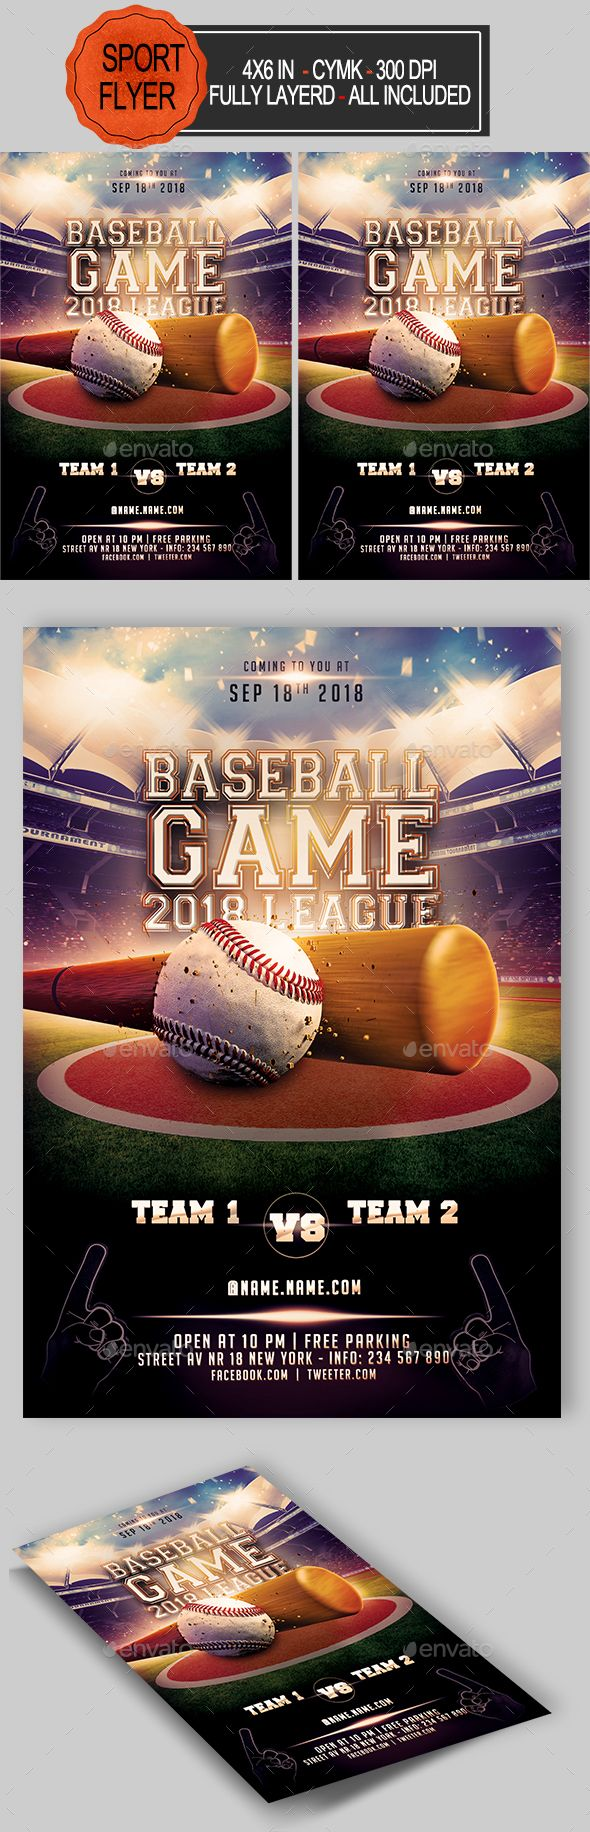 Baseball Flyer Pinterest Flyer Template Template And Fonts